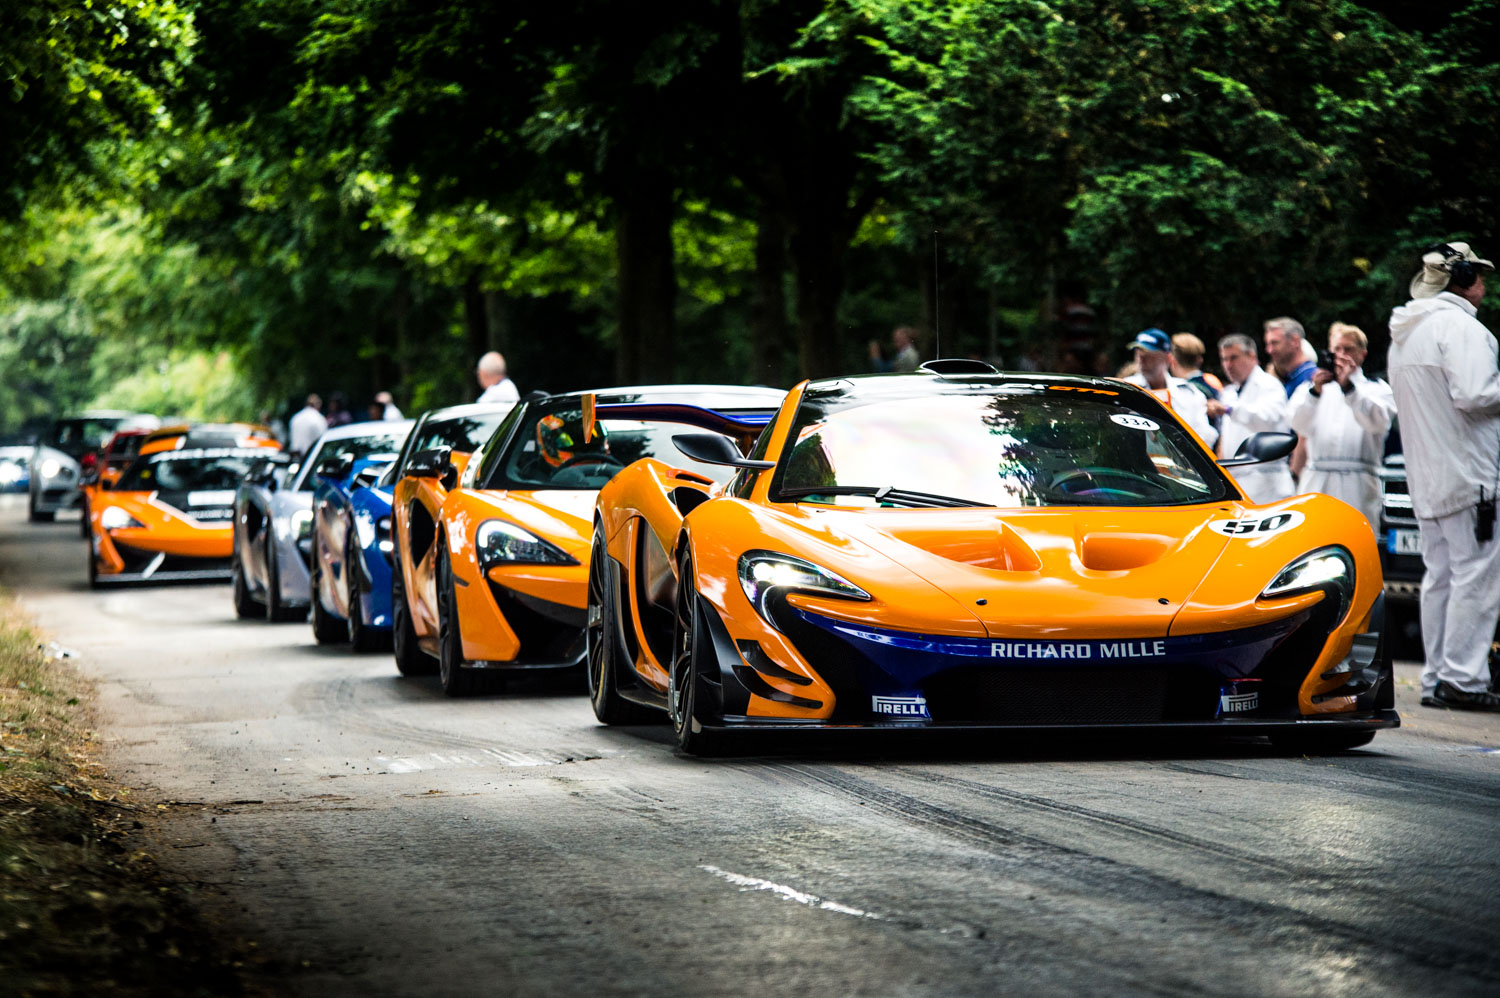 Jayson-Fong-Photography-Form-and-function-international-Mclaren-Group-2.jpg